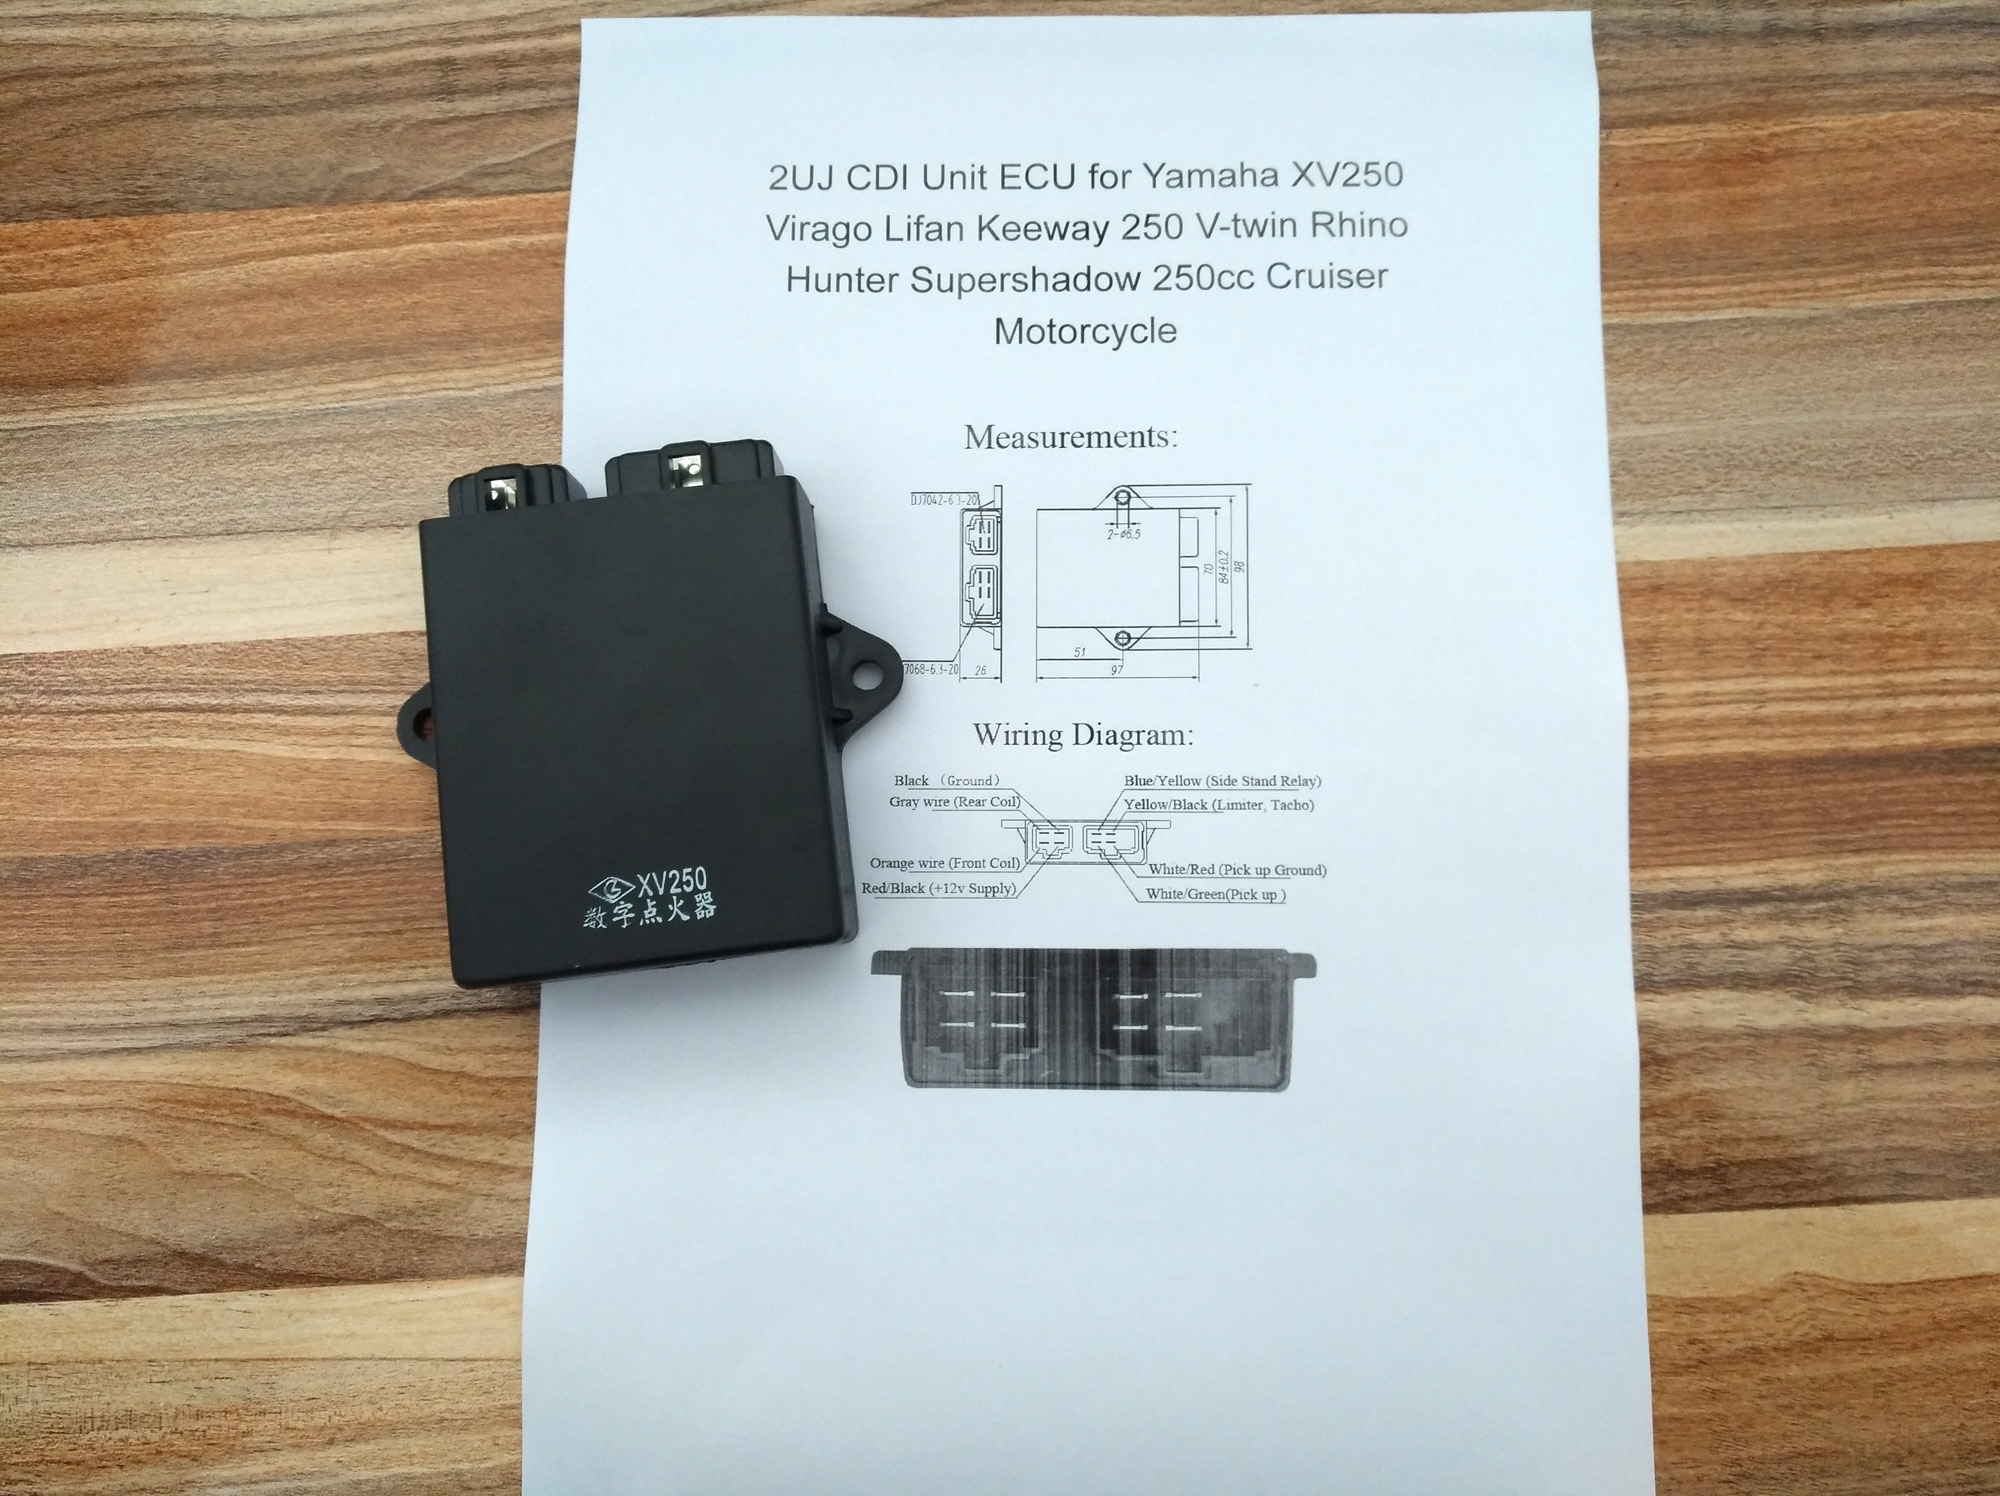 2uj ecu cdi for yamaha xv250 virago lifan keeway 250 v 91 wrangler 35 pin ecu diagram